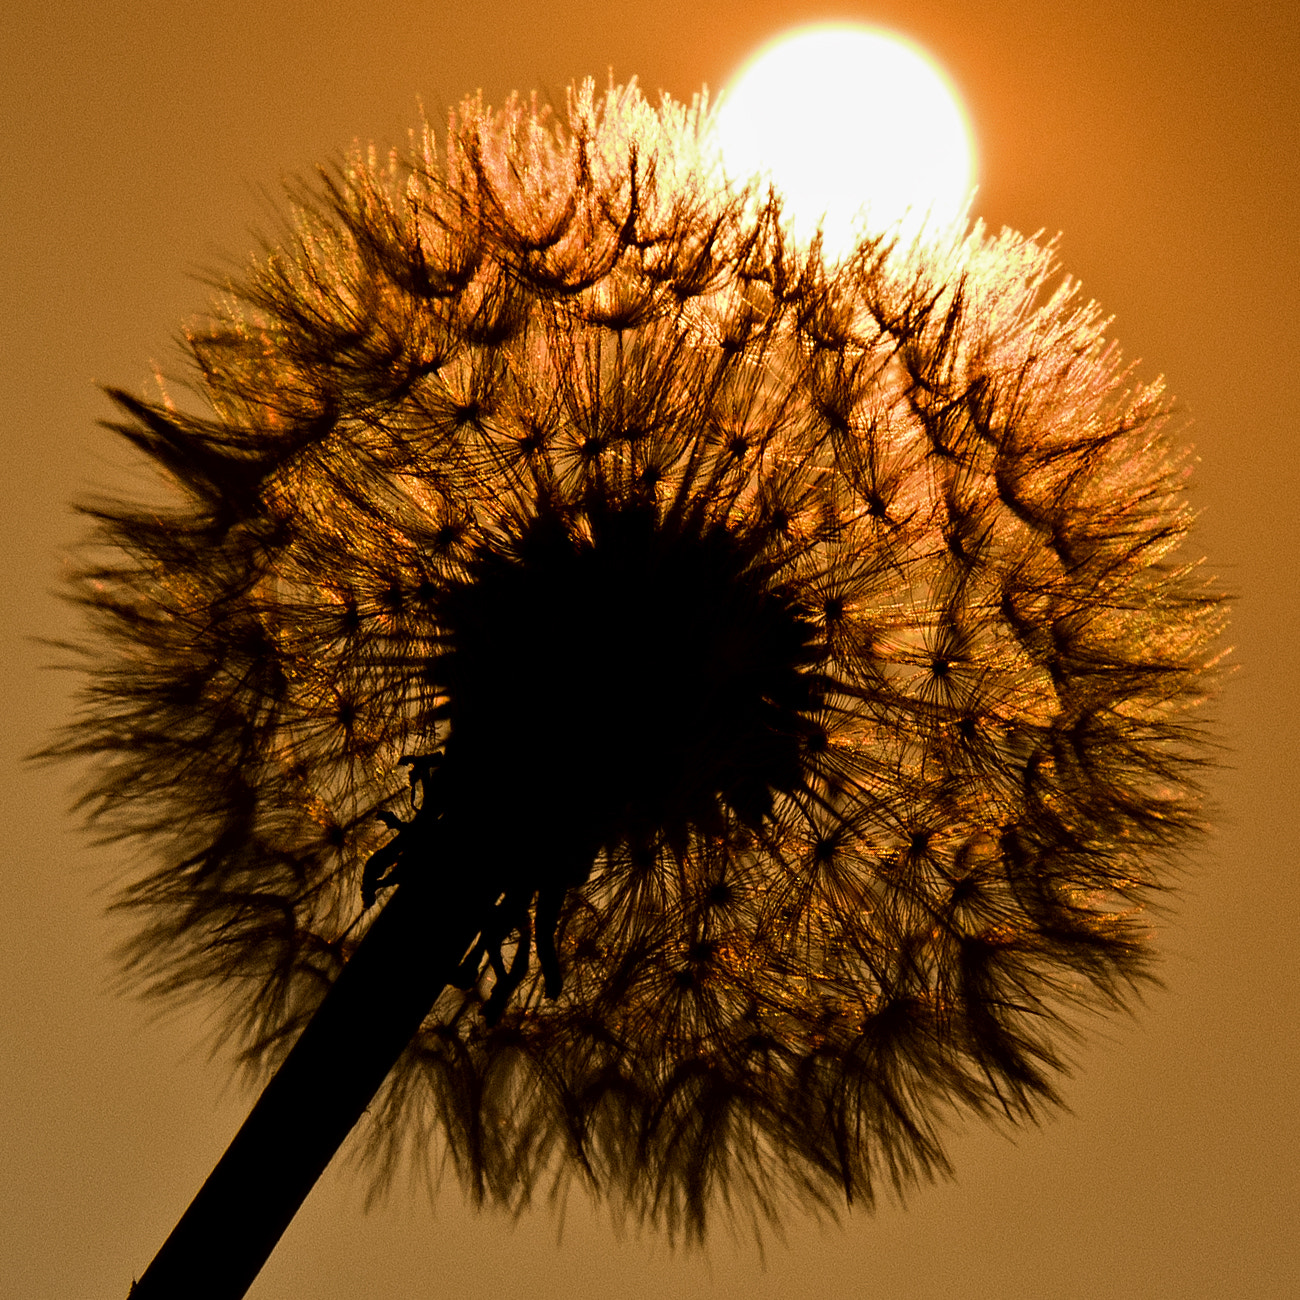 Photograph Dandelion Eclipse by Alan Sheers on 500px